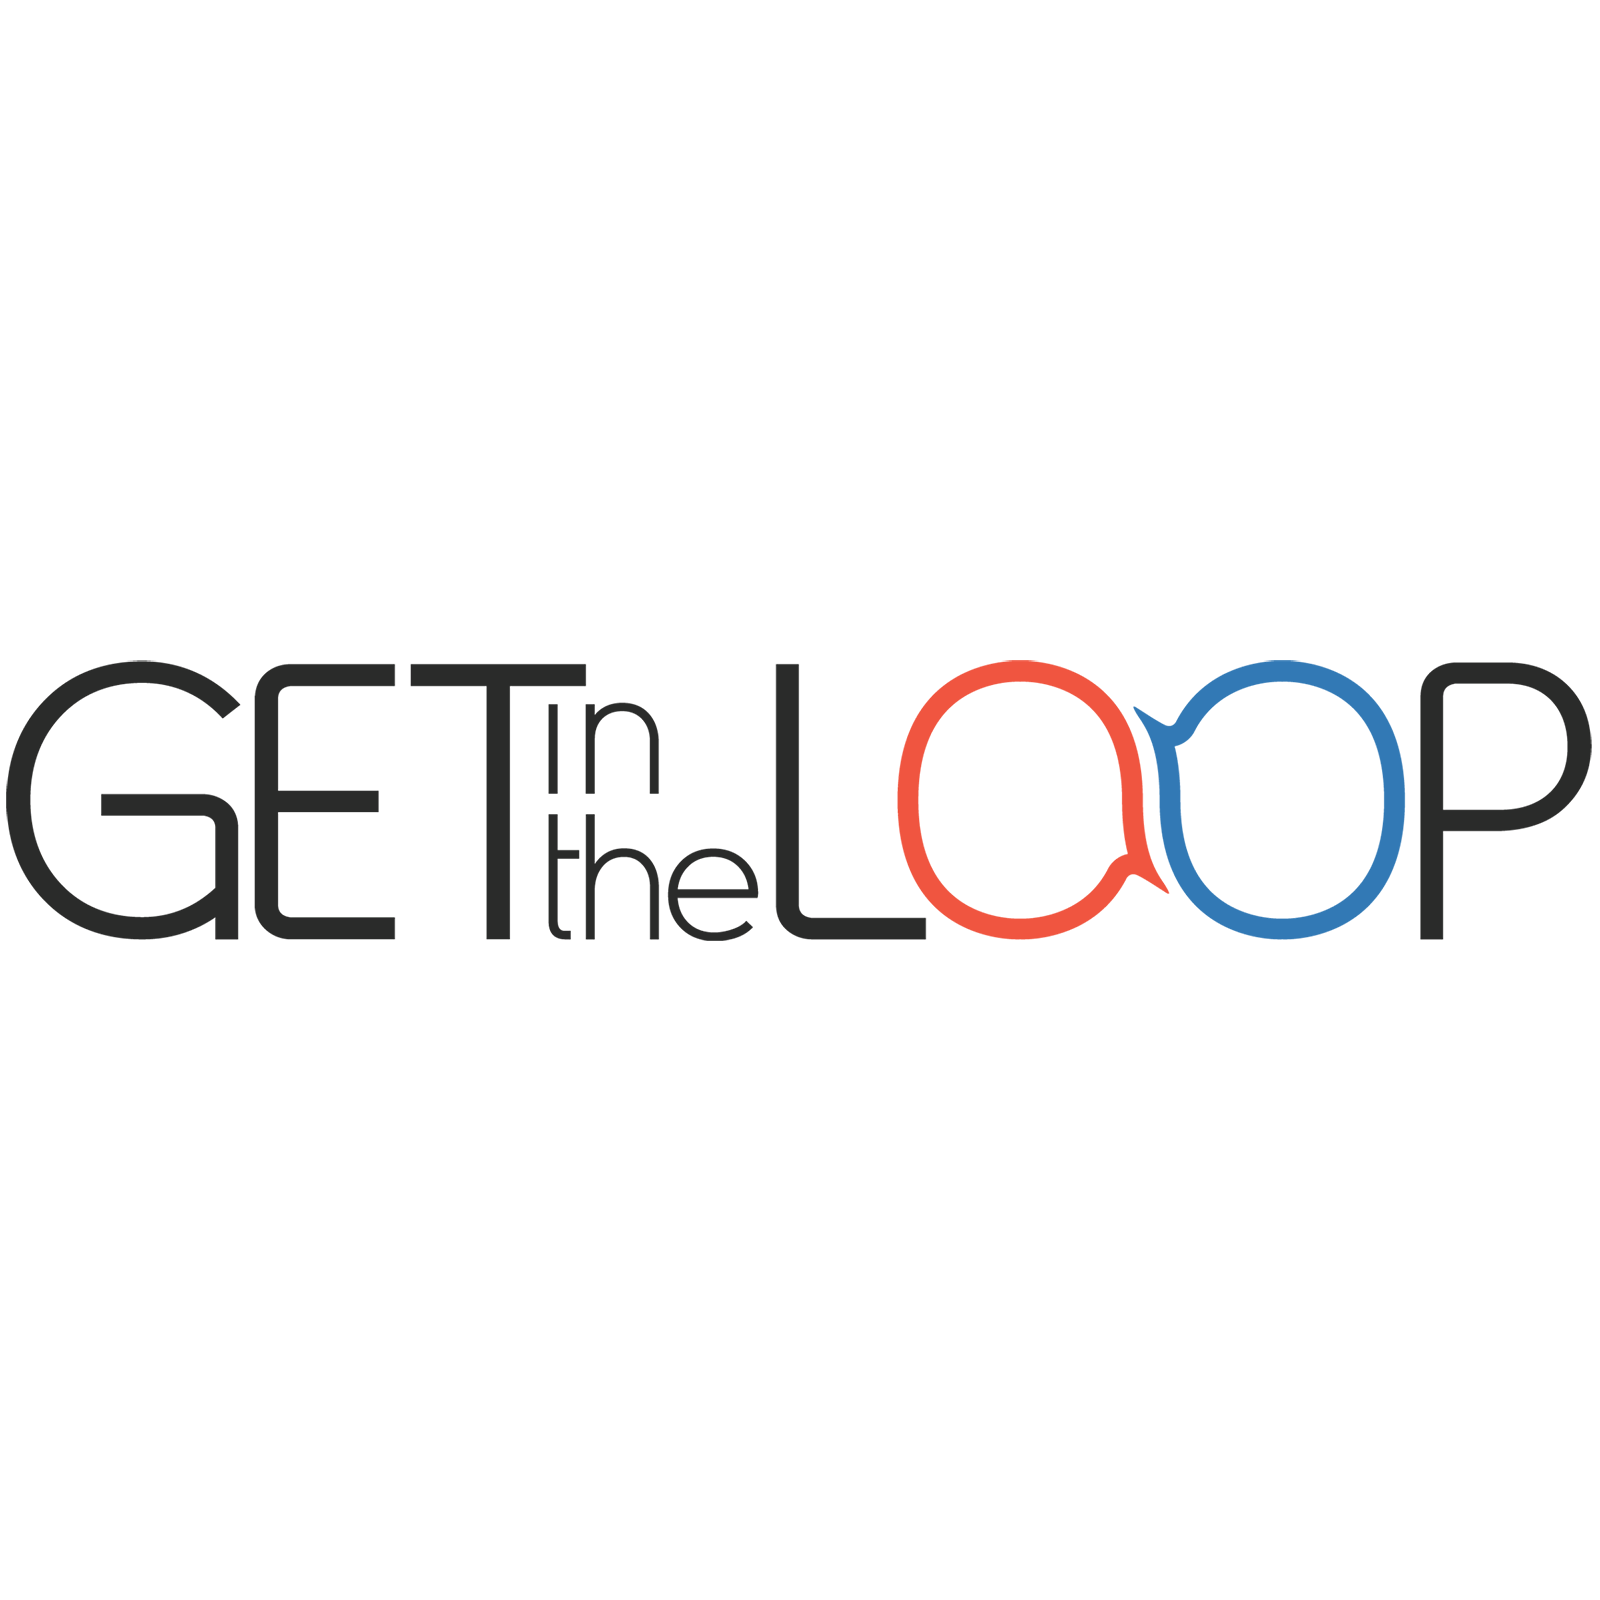 Get In The Loop image